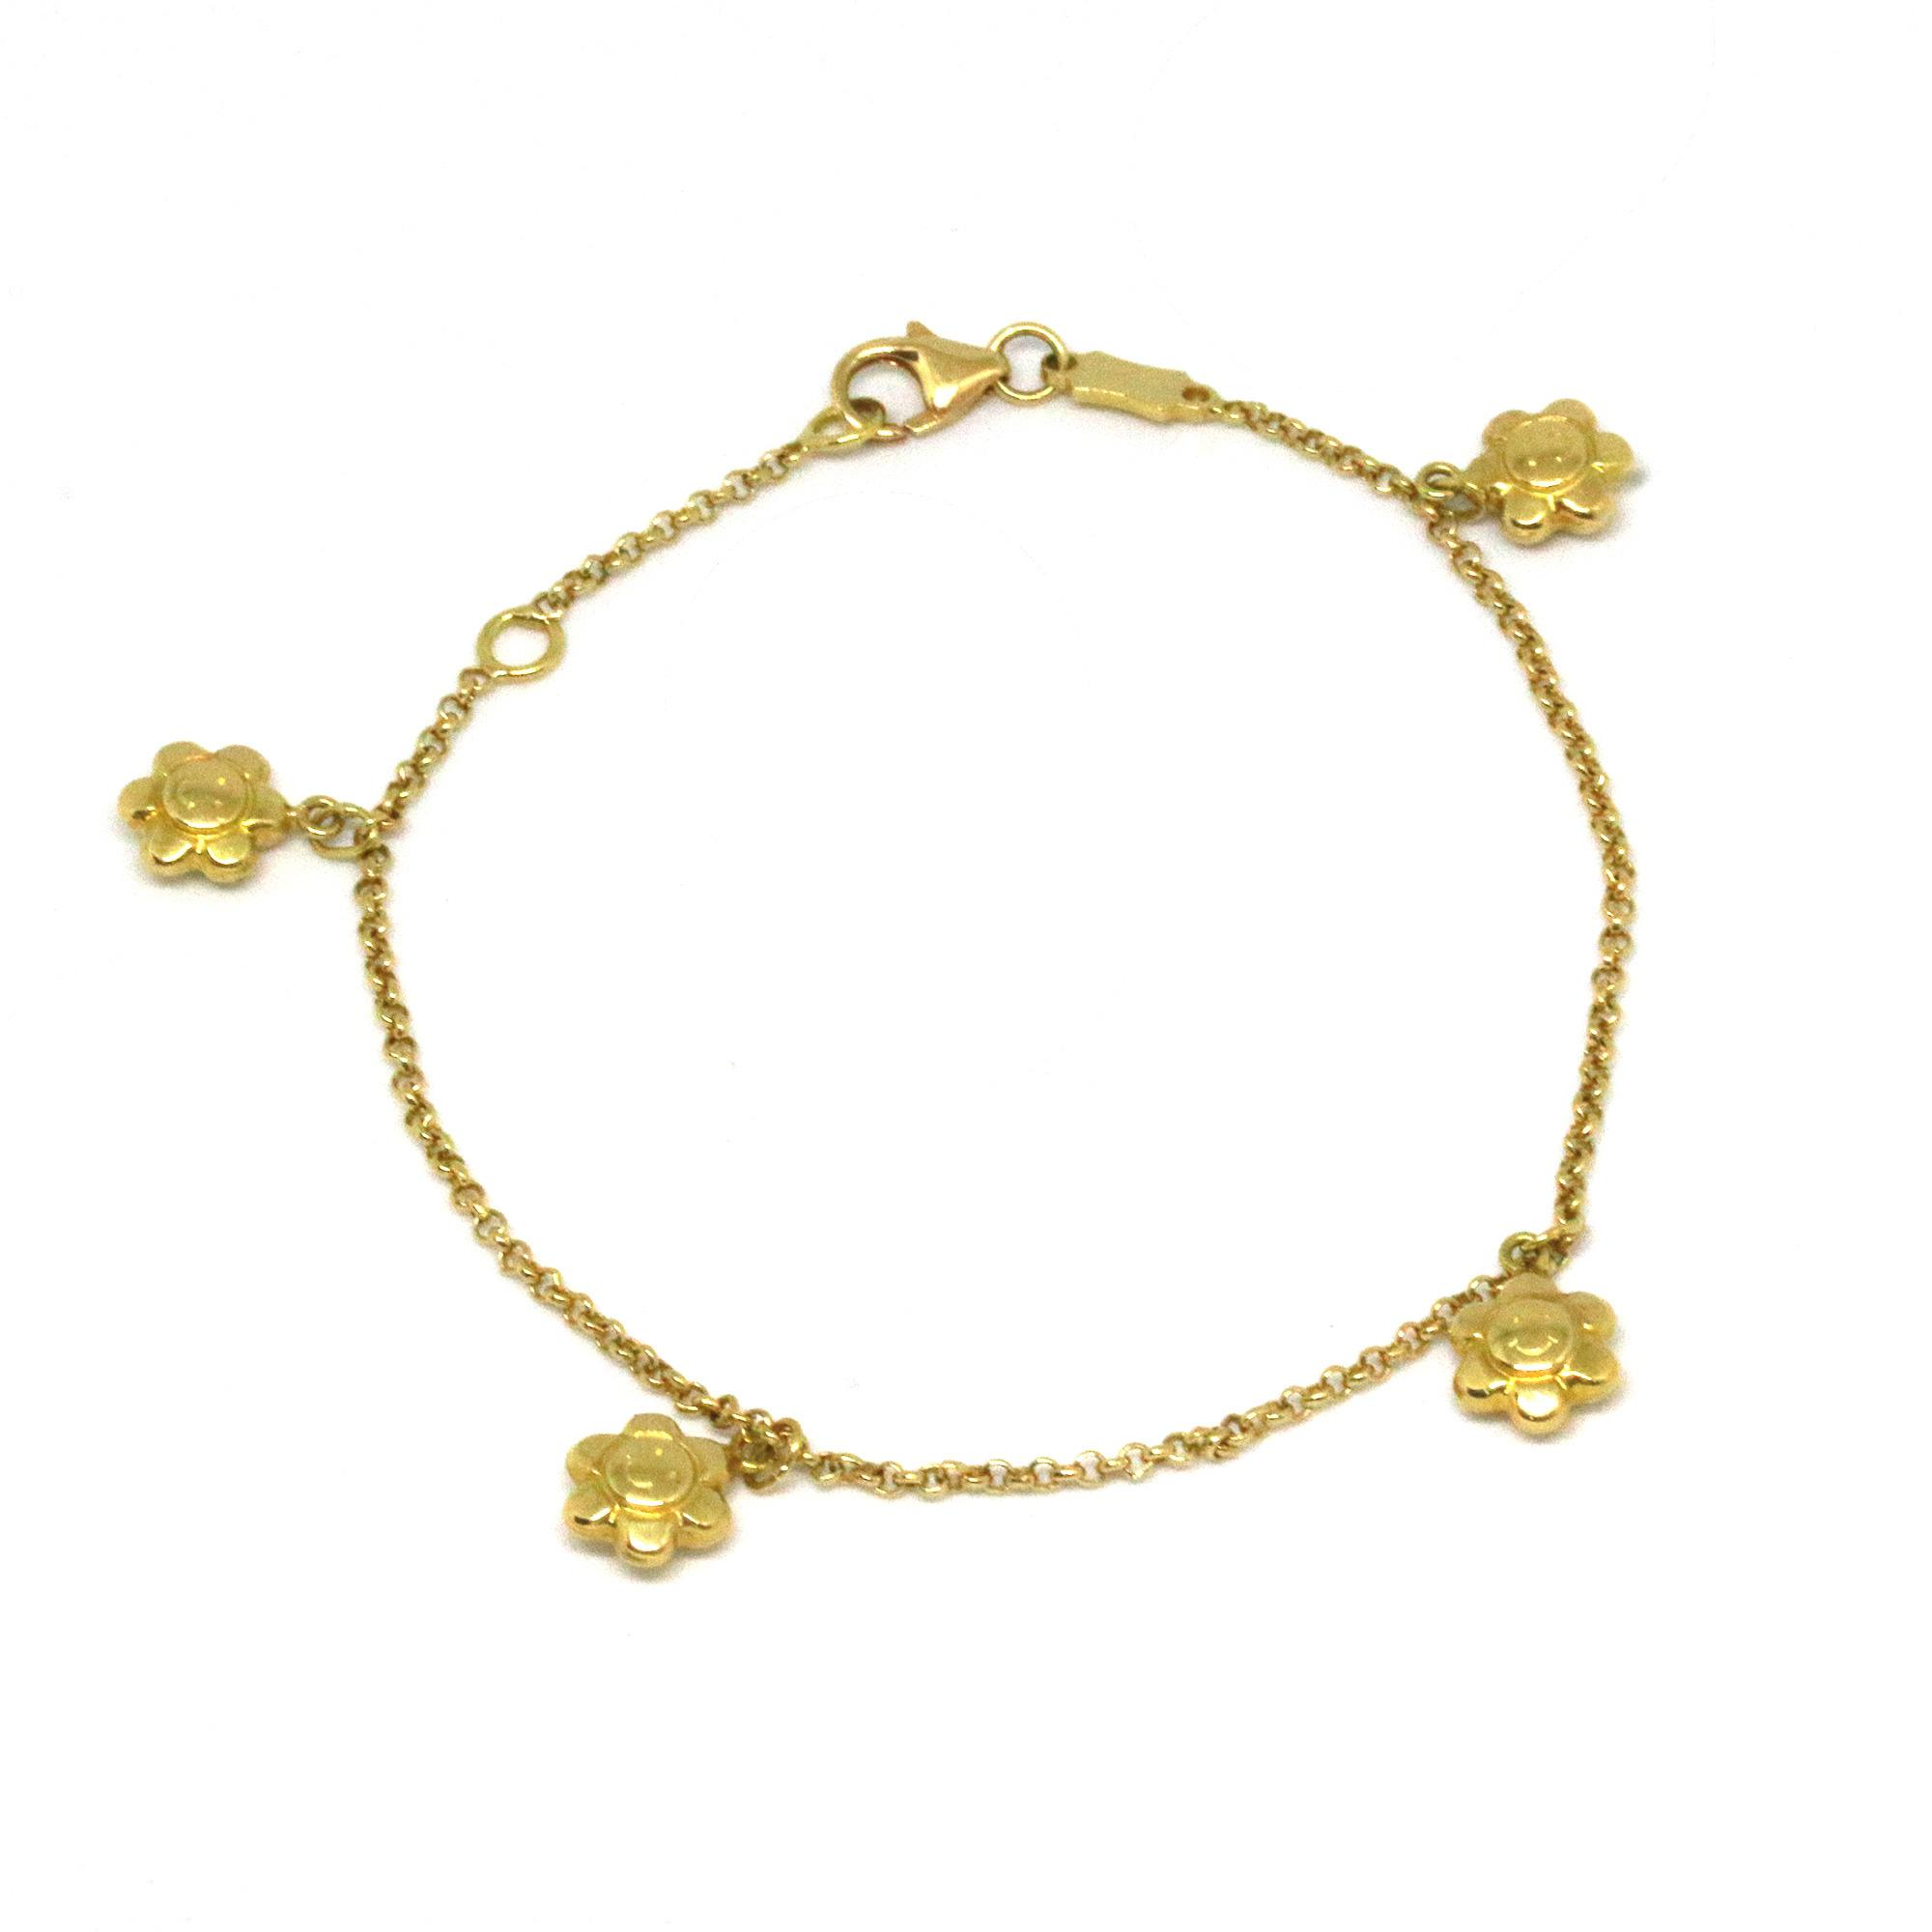 anklet cut chain mm spring k with rope karat cute gold yellow ring clasp diamond